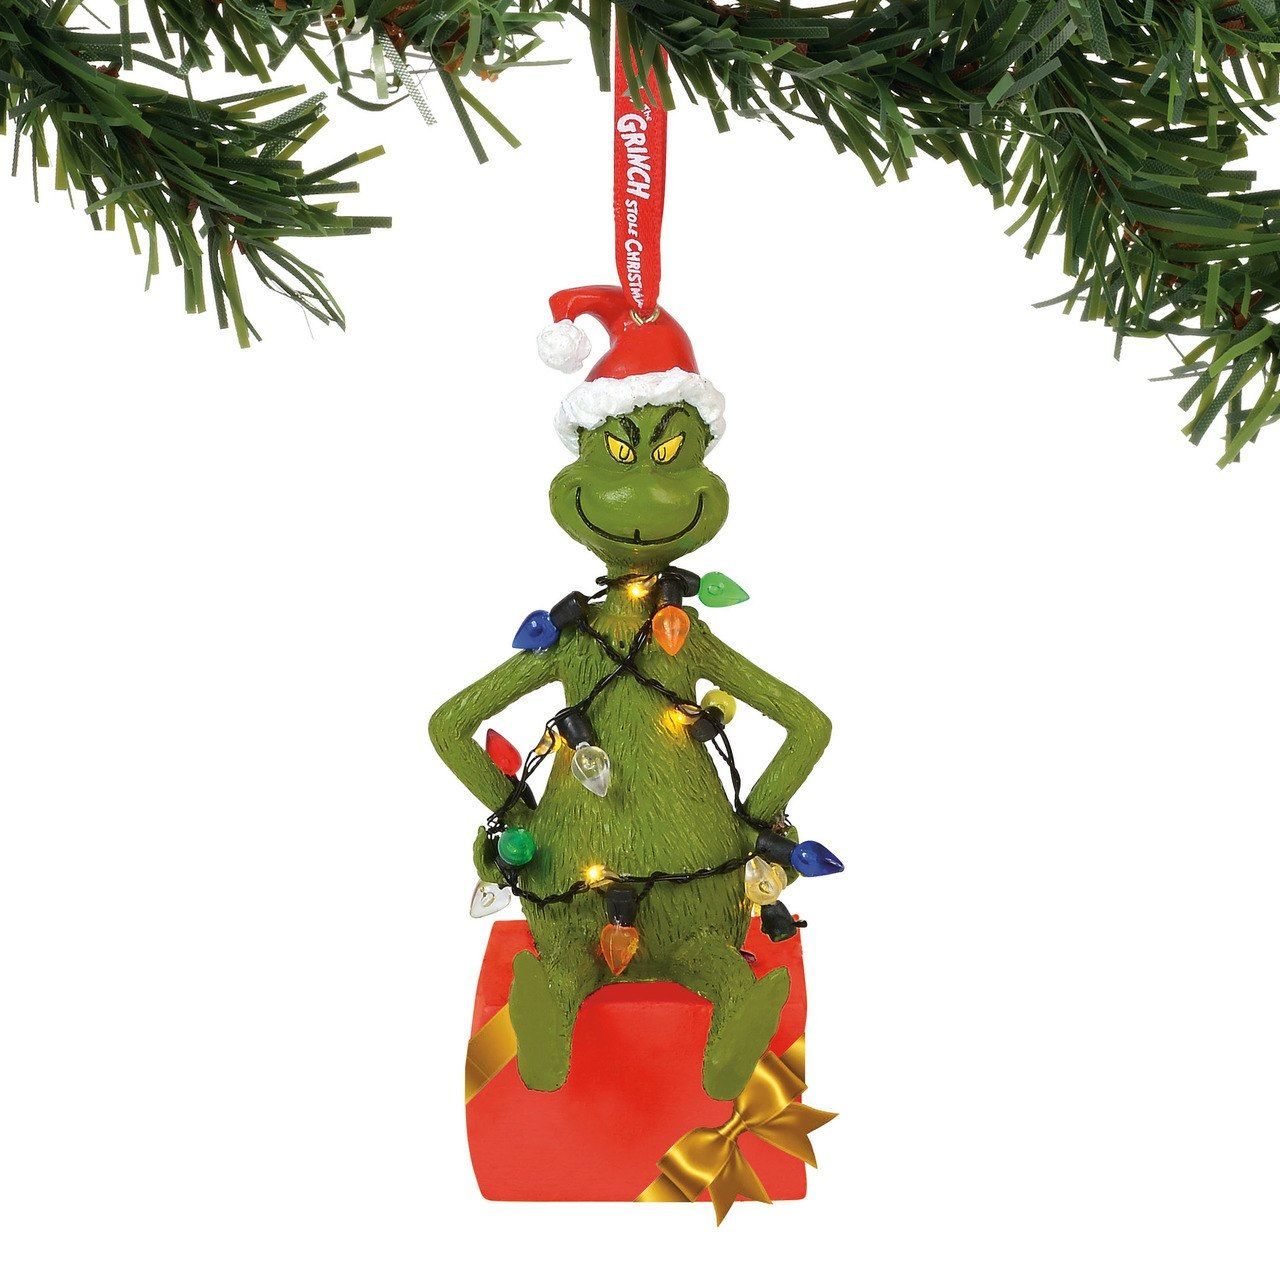 Department 56 Grinch Wrapped In Lights Lighted Christmas Ornament 6000308 Christmas Light Ornament Grinch Ornaments Painted Christmas Ornaments